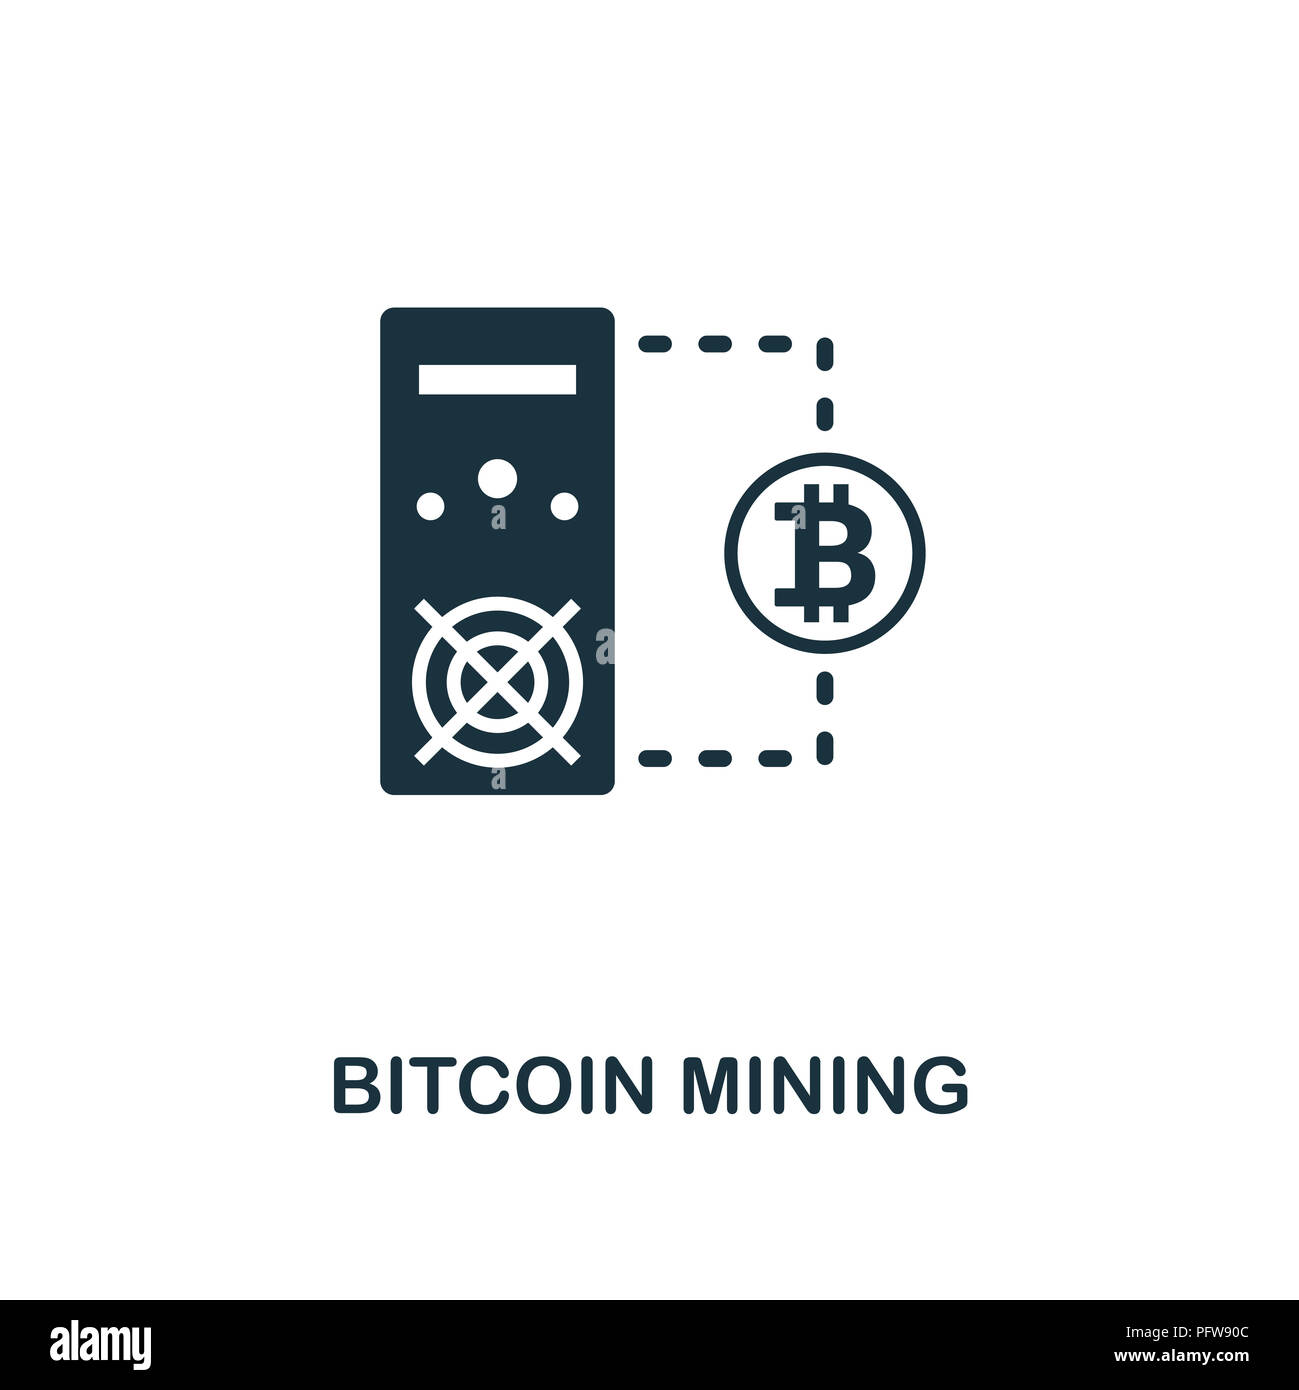 Bitcoin Mining icon  Monochrome style design from crypto currency